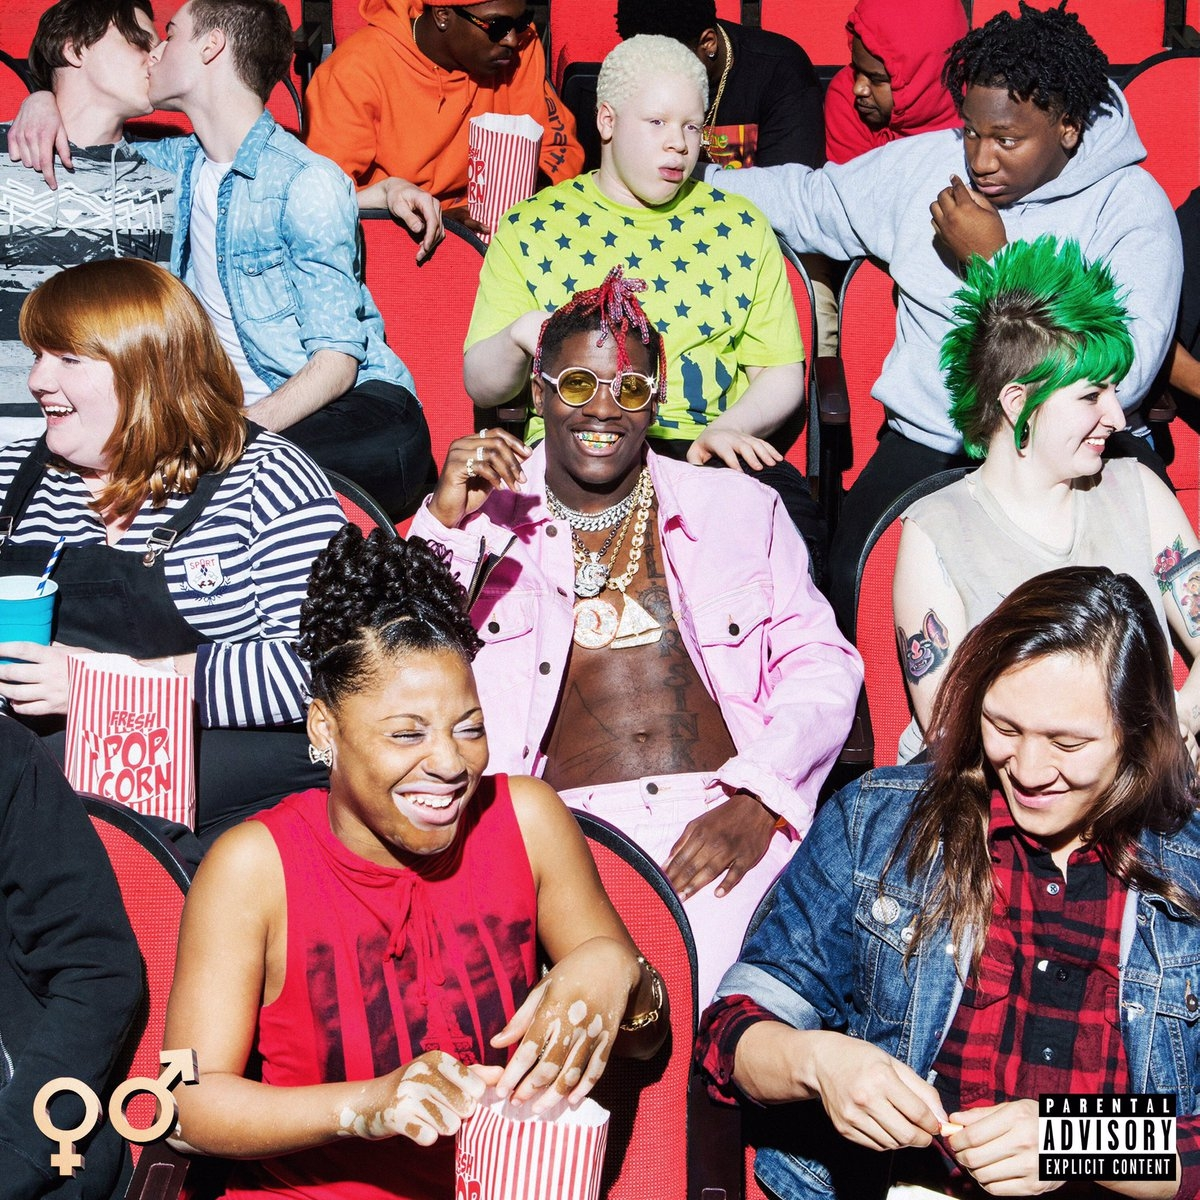 LIL YACHTY - TEENAGE EMOTIONS  #4 BILLBOARD HIPHOP ALBUM